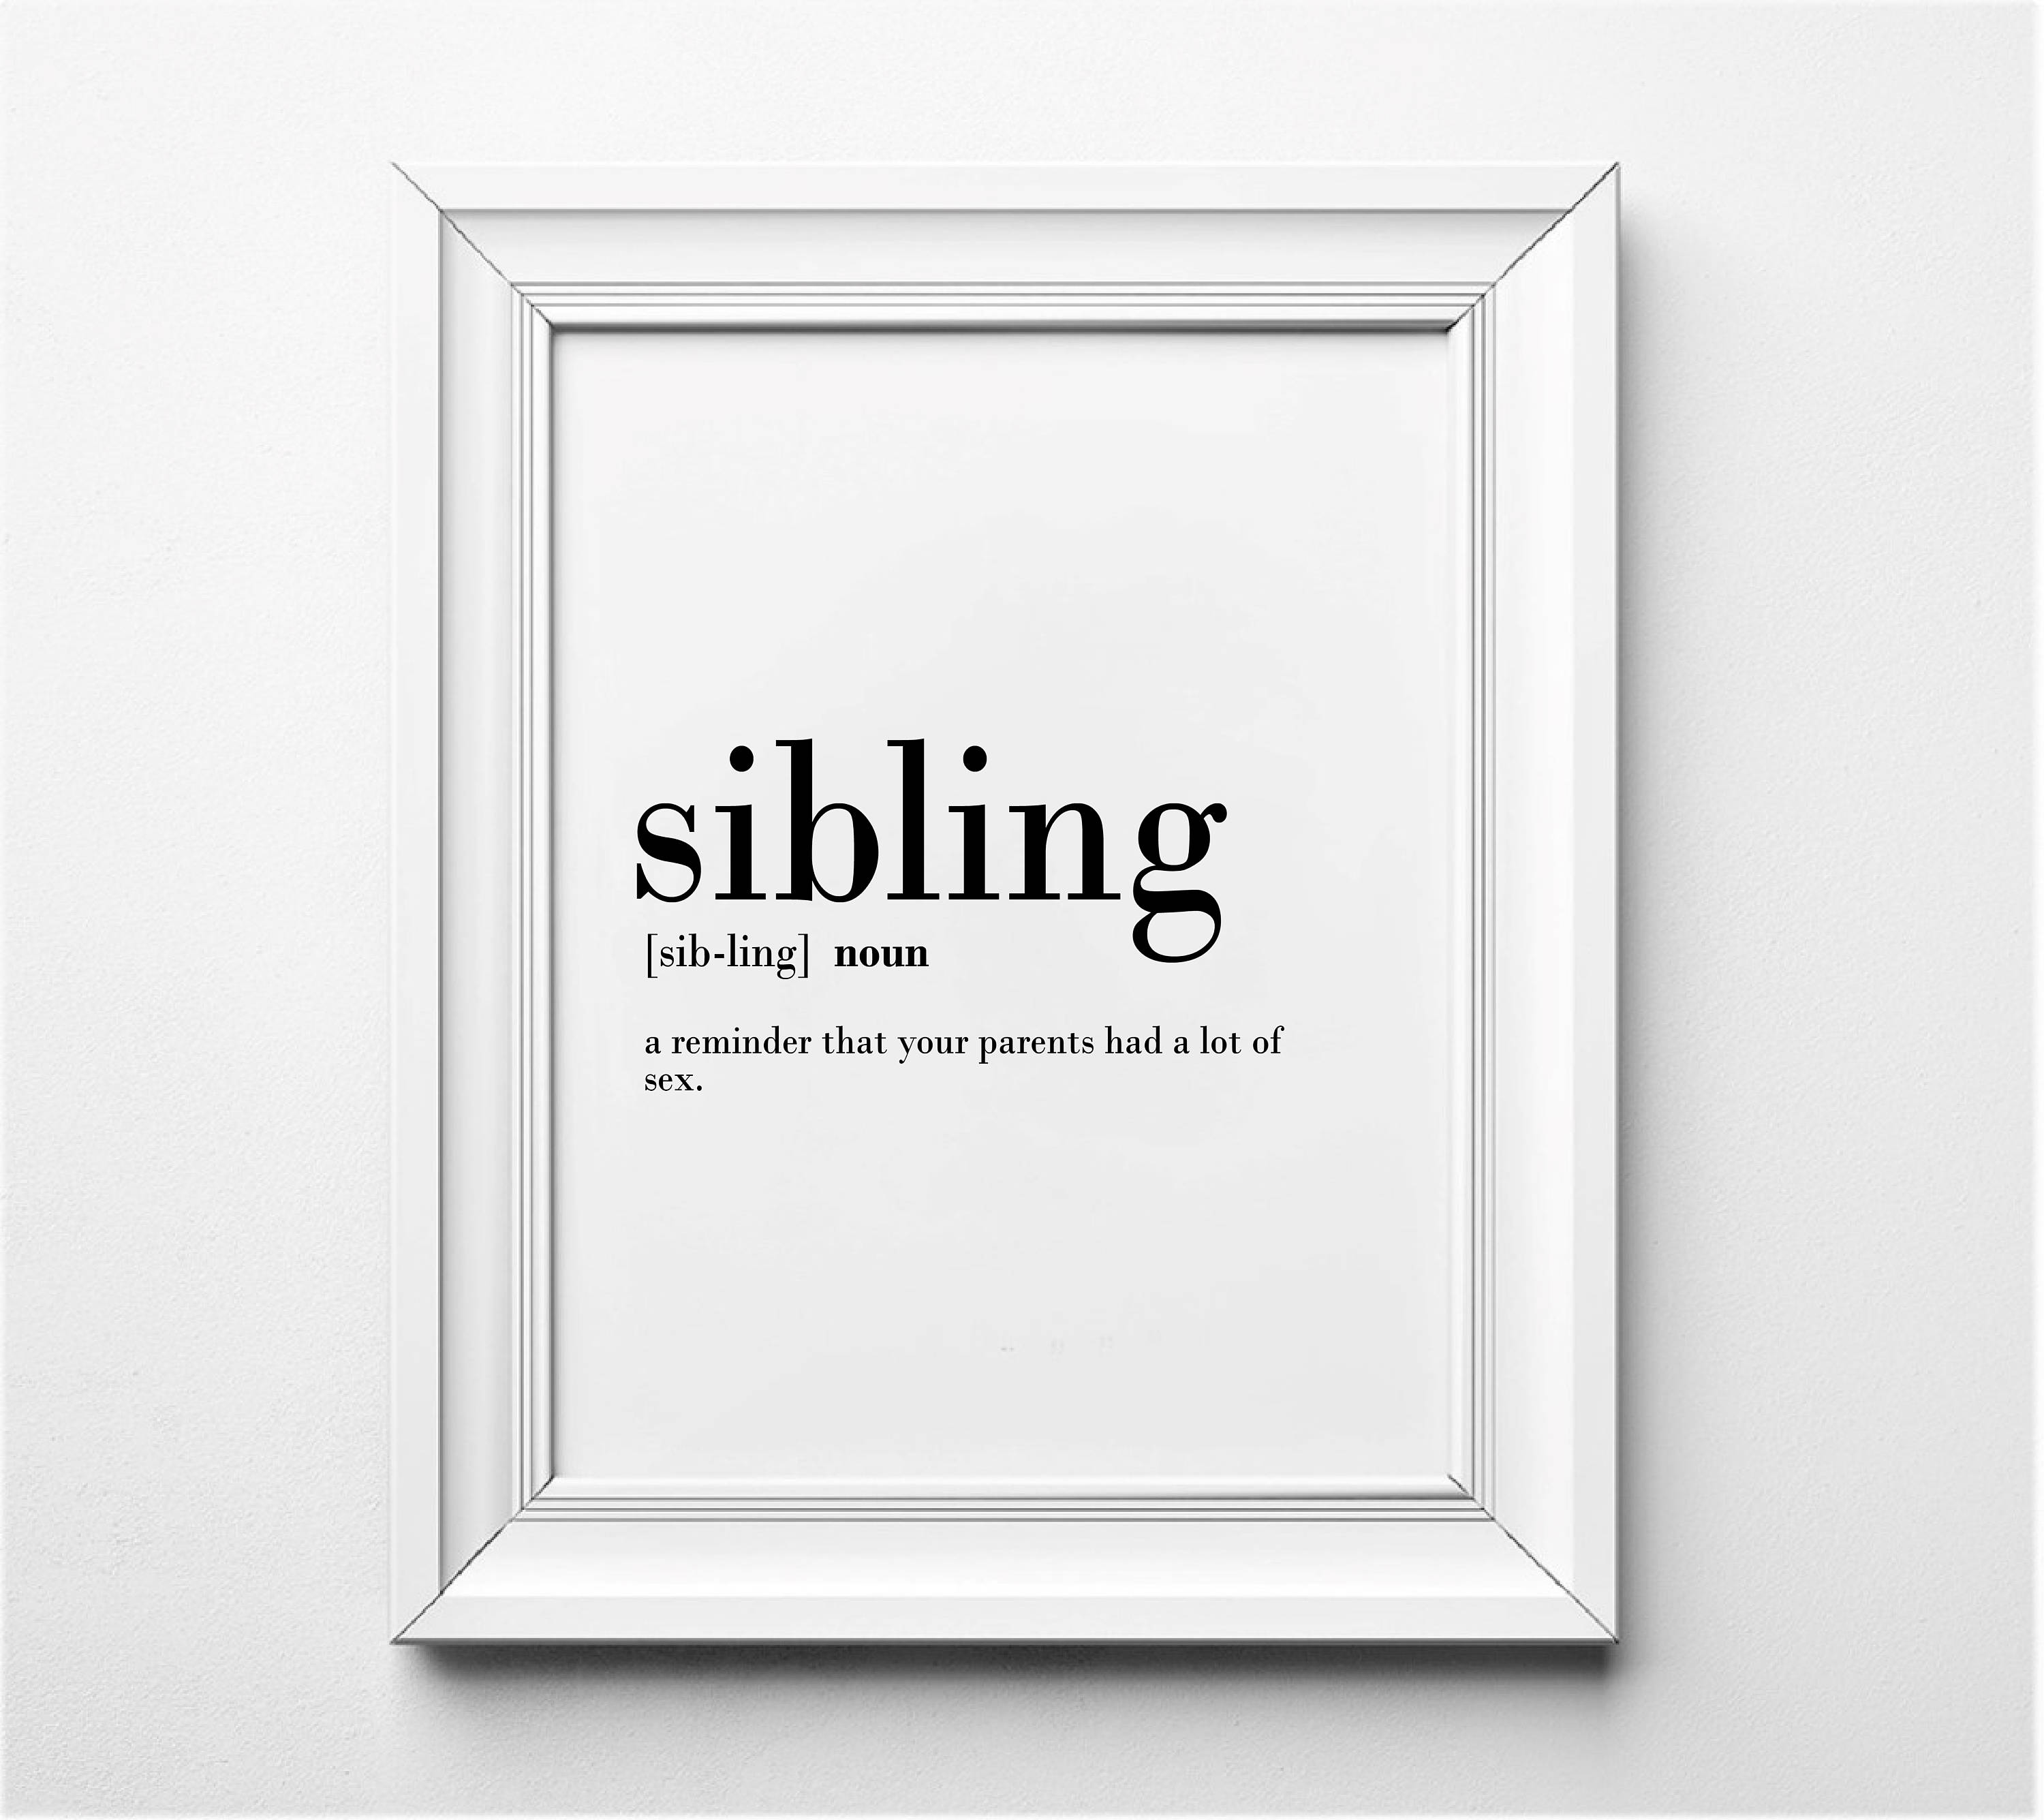 Sibling Definition Funny Sibling Gift Ideas Gifts for | Etsy